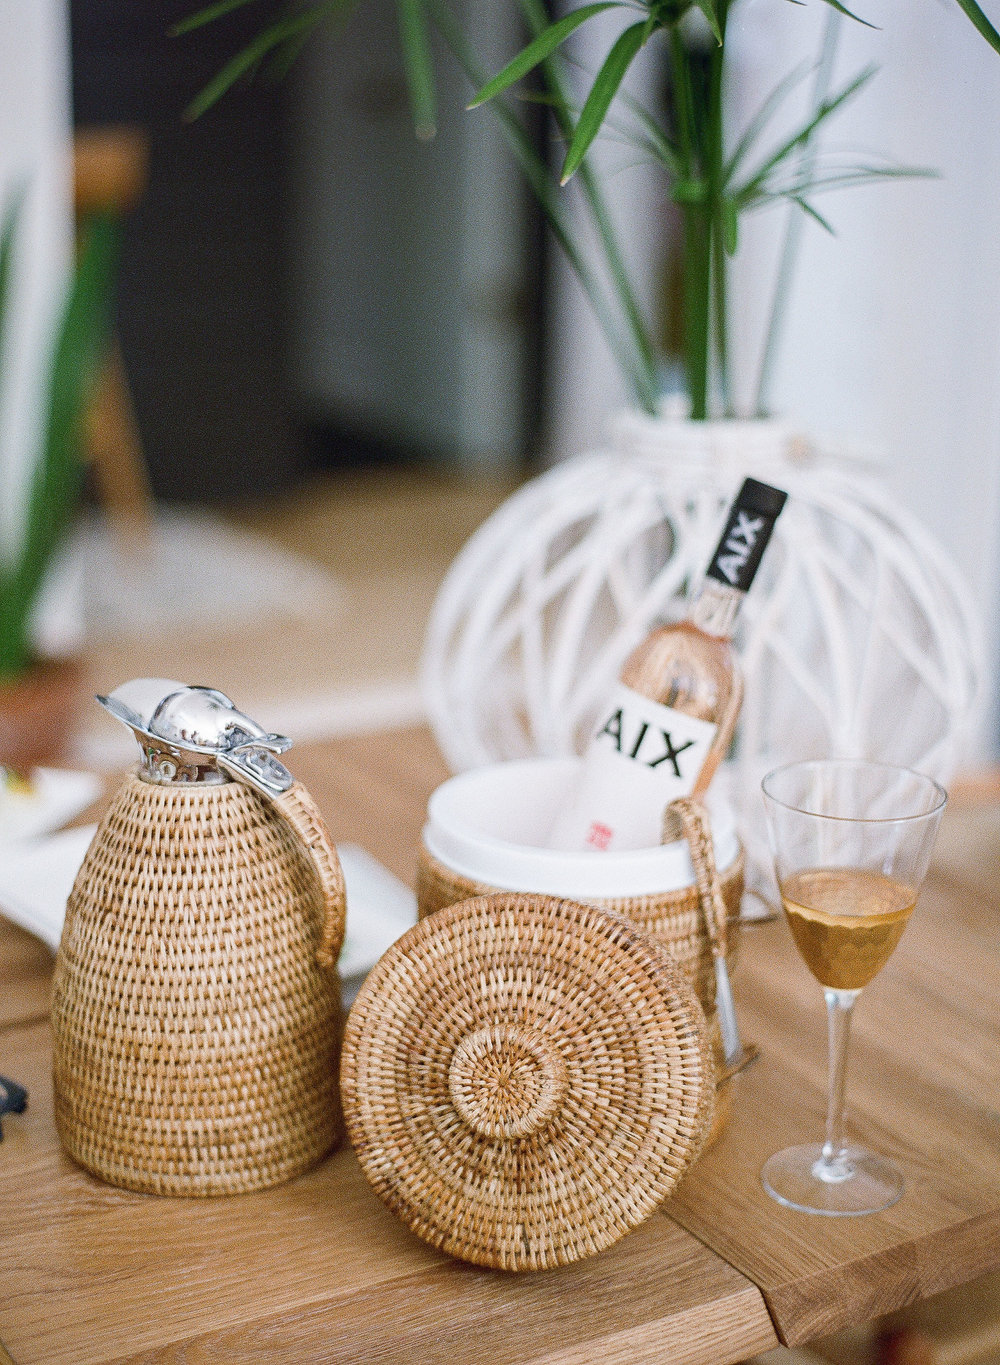 Rattan and wicker bar accessories for Palm Beach themed party